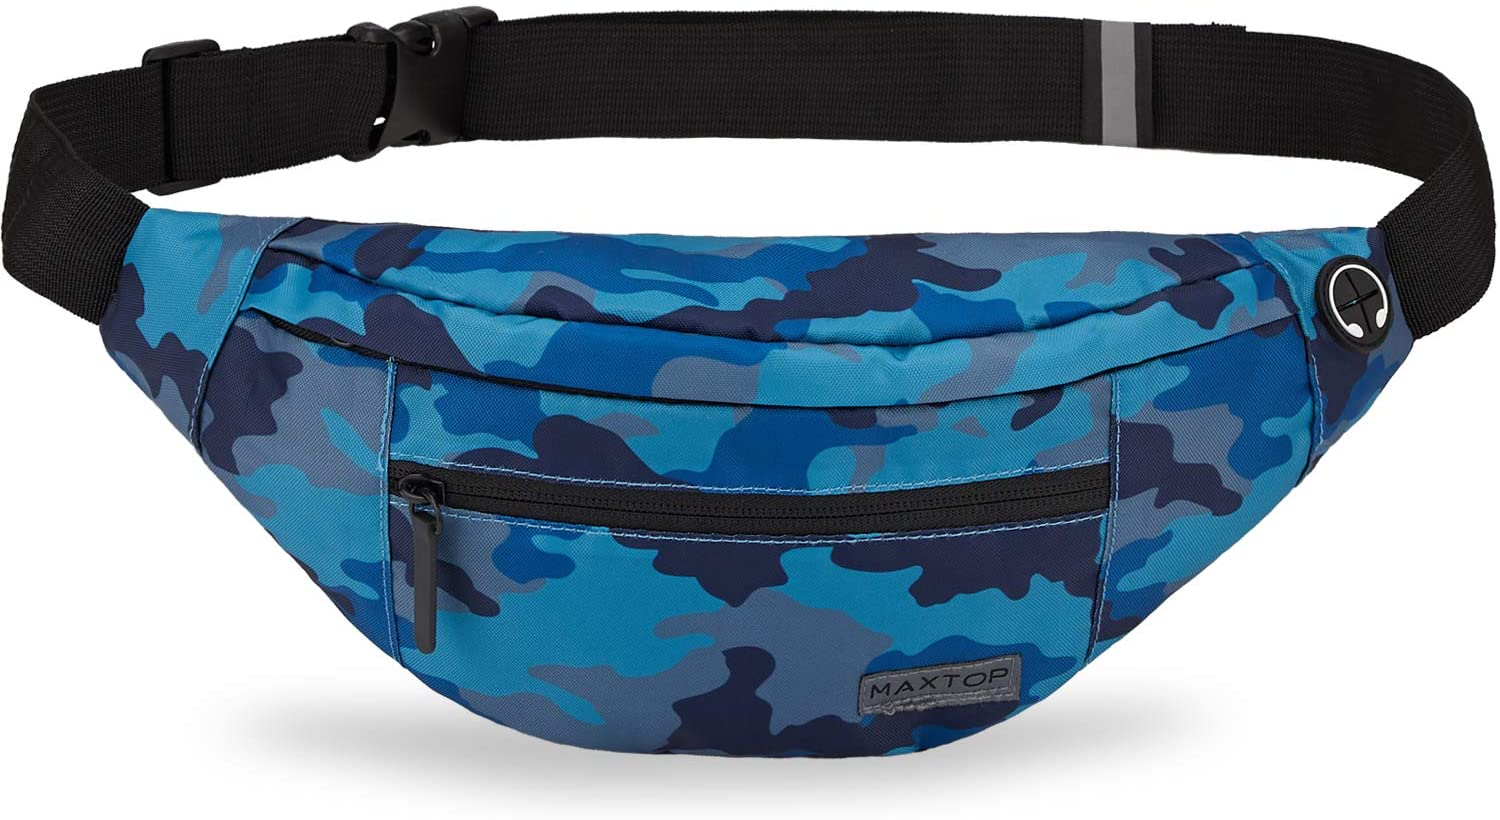 Maxtop Funpack Large Fanny Pack with 4-Zipper Pockets - United Festival Outfitters